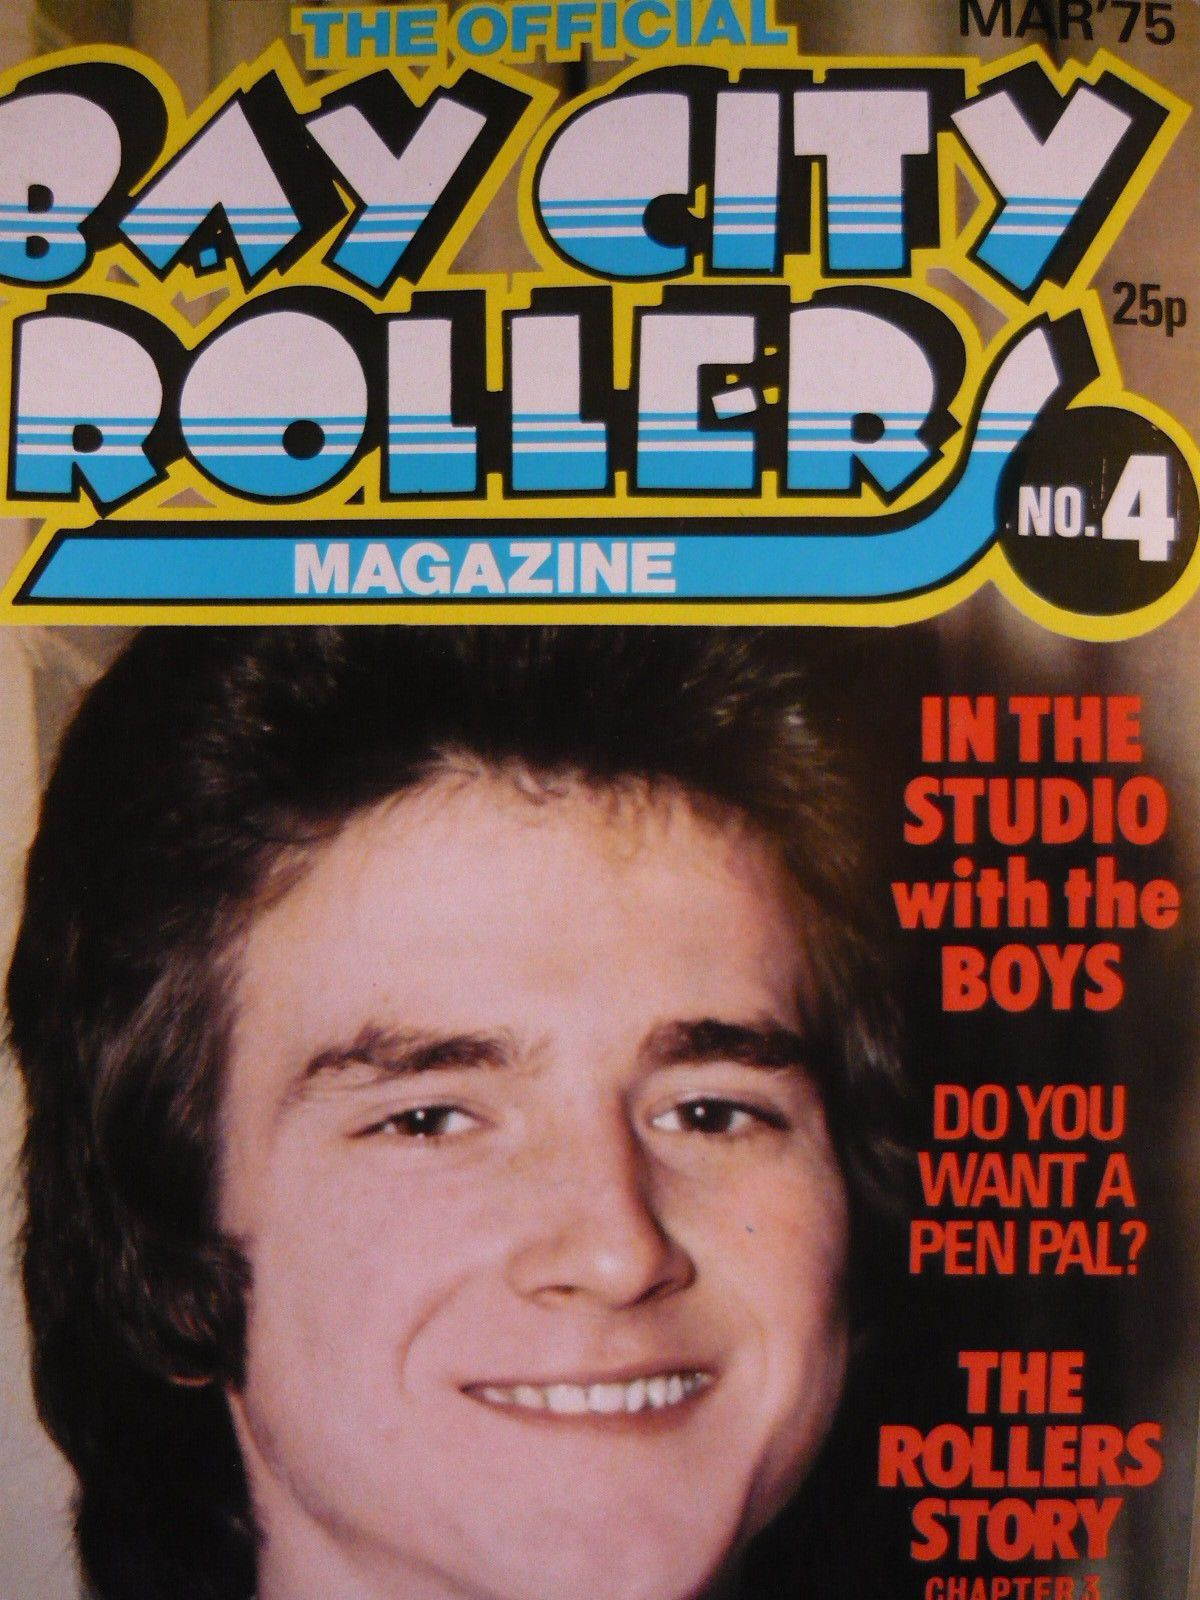 THE OFFICIAL BAY CITY ROLLERS MAGAZINE - NO 4 MARCH 1975 | eBay